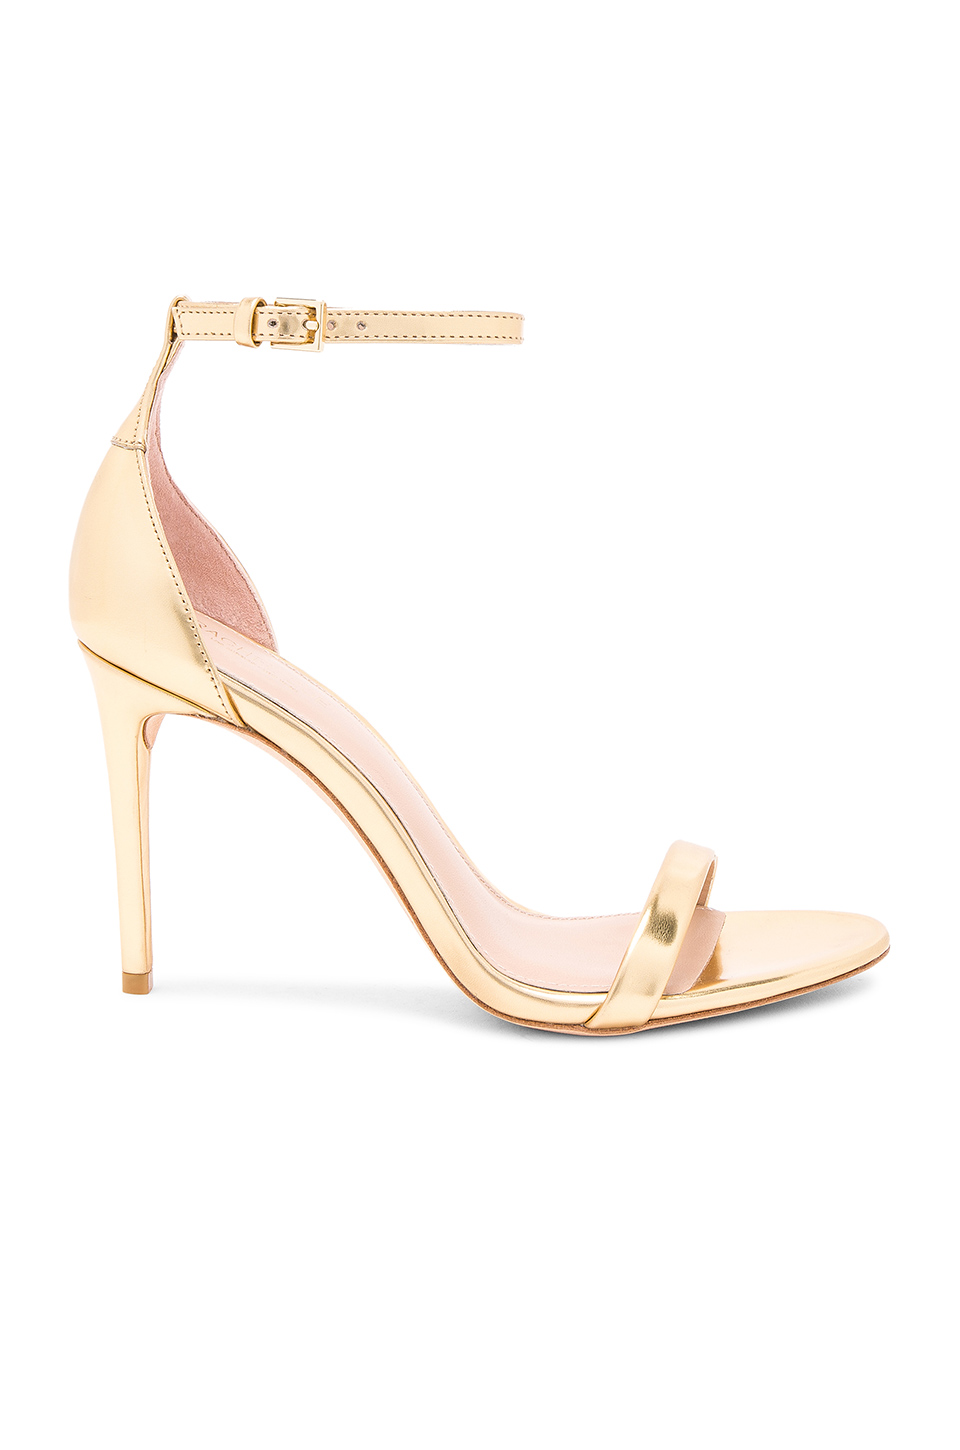 RACHEL ZOE Ema Metallic Heel in Gold